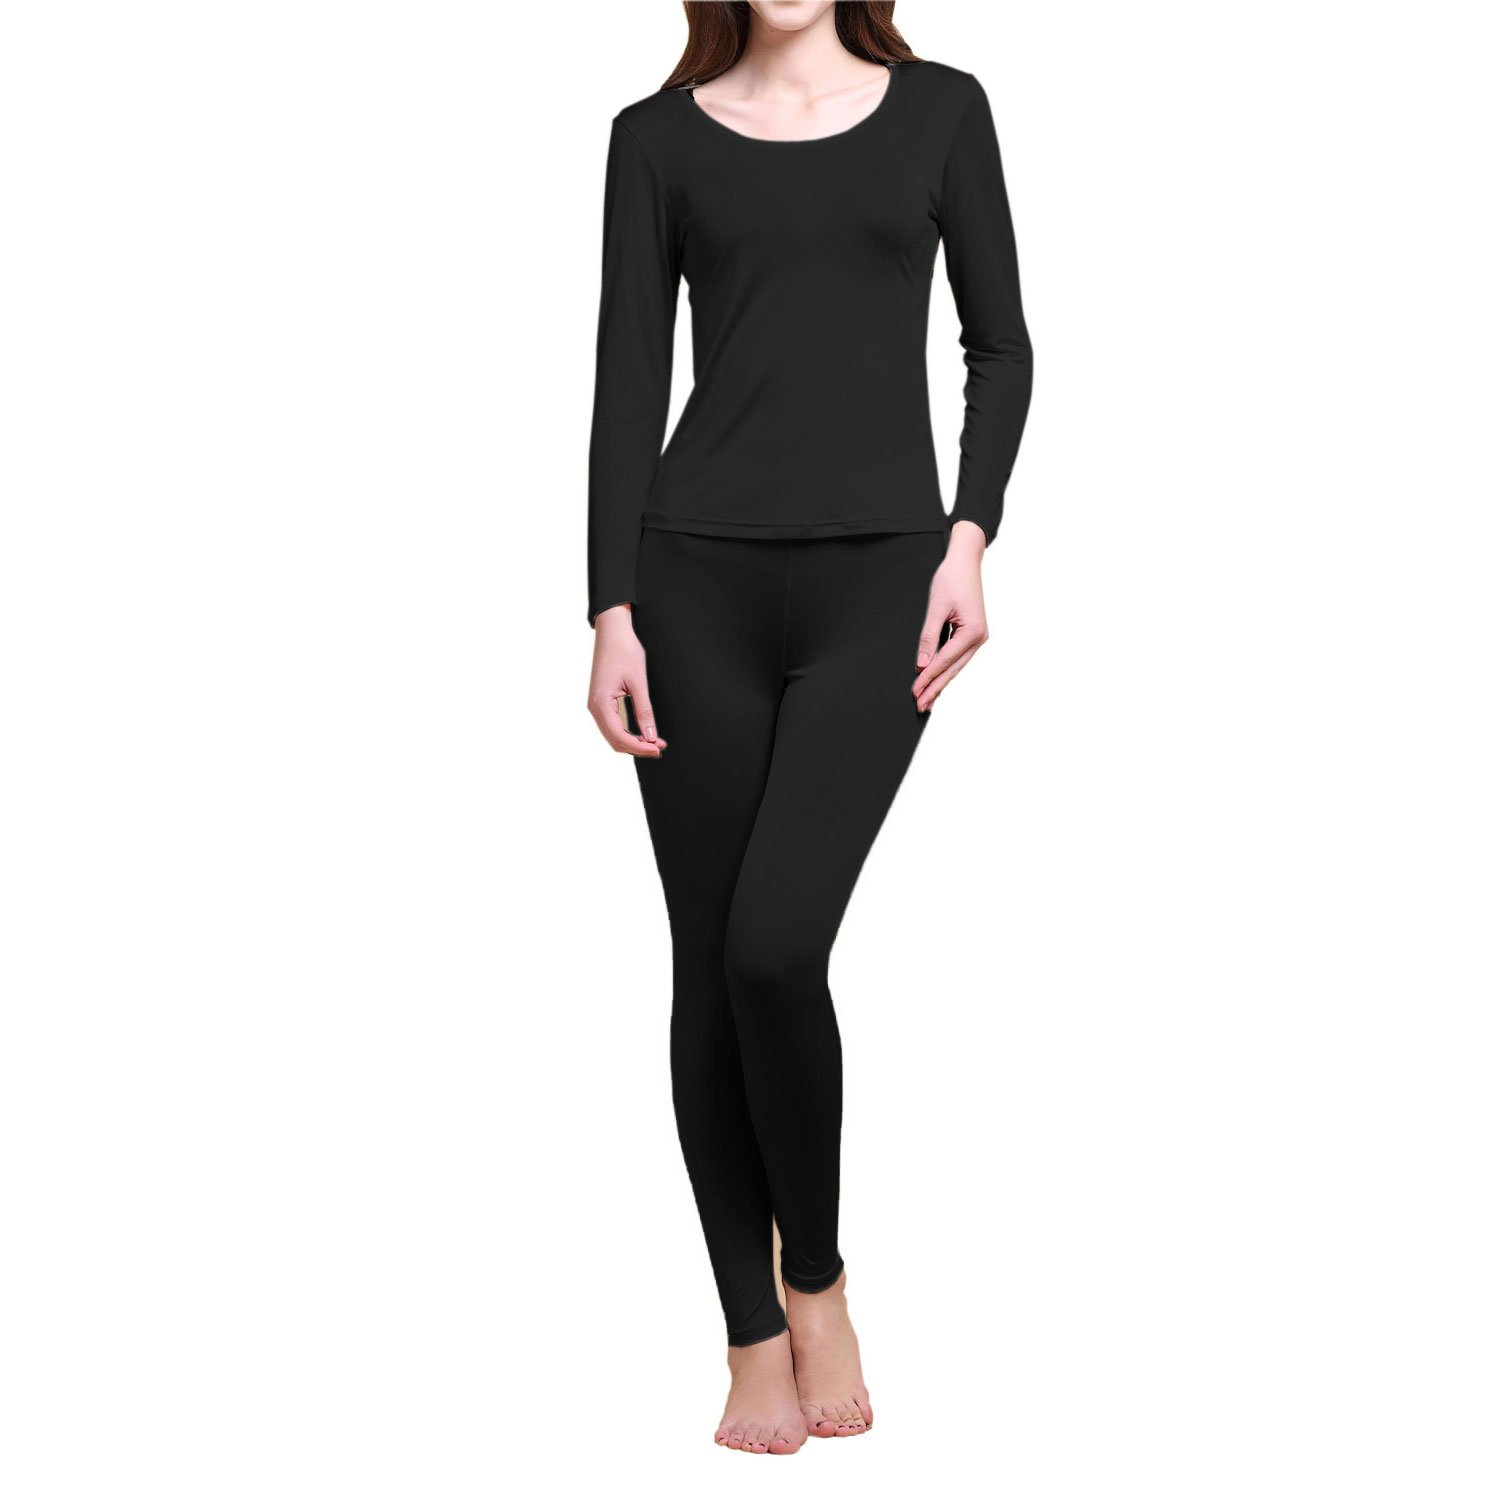 Paradise Silk Pure Silk Knit Women Underwear Long Johns Top and Bottom Set[US10,Black]